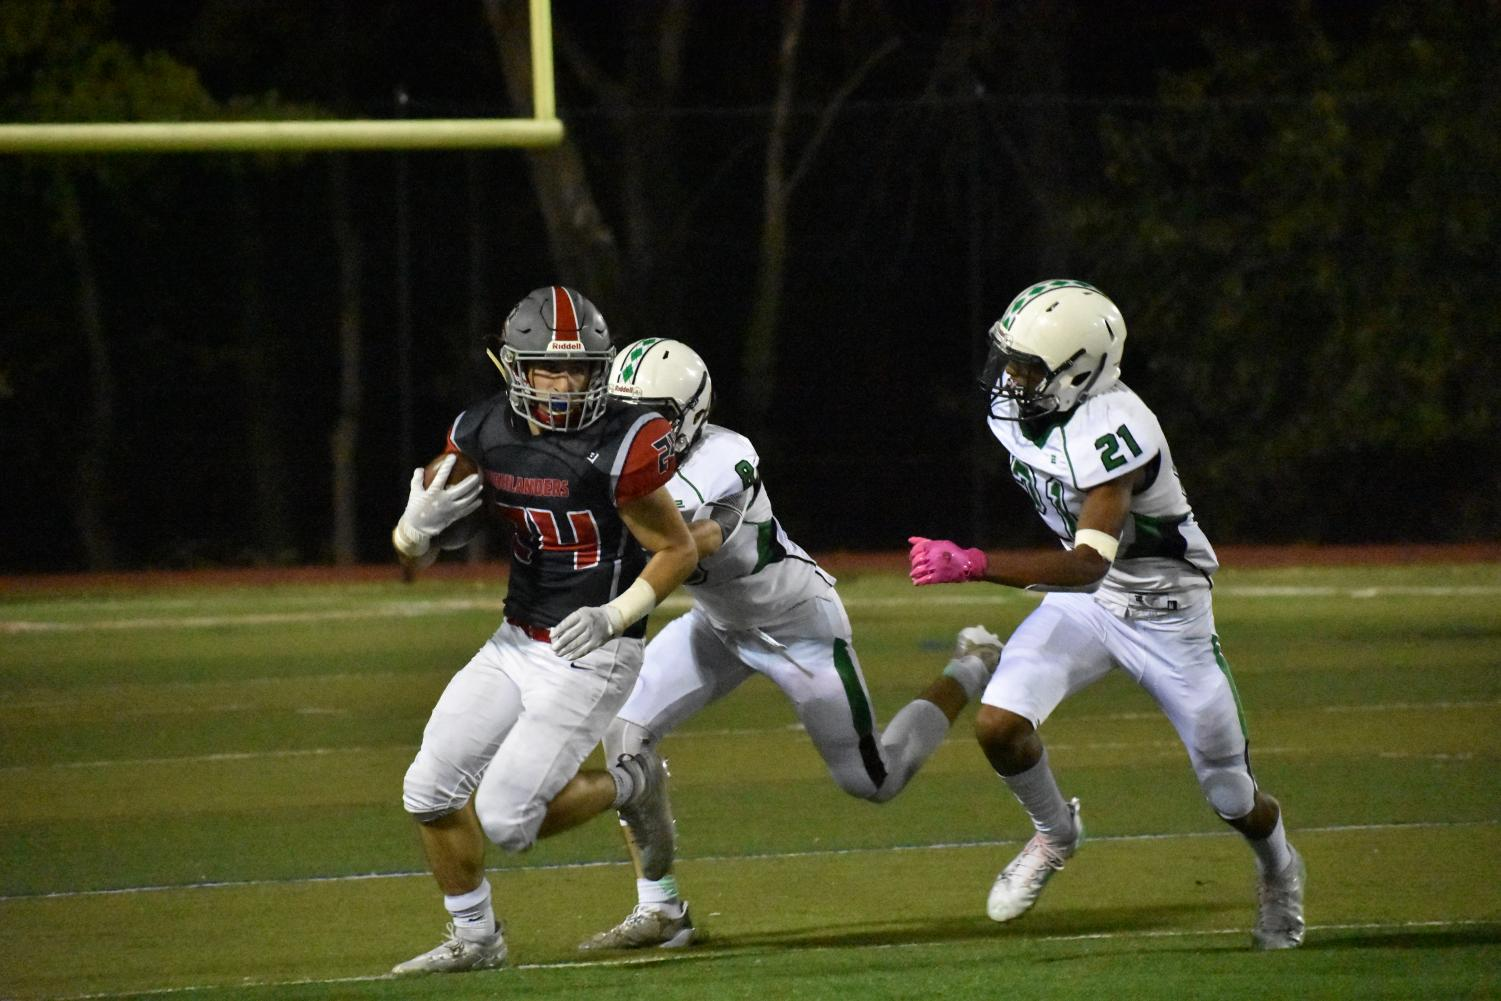 Full Speed Ahead- Running back Ryan Jessar races down the field past two Wakefield defenders. He led the Highlanders offense in the exciting Homecoming win.